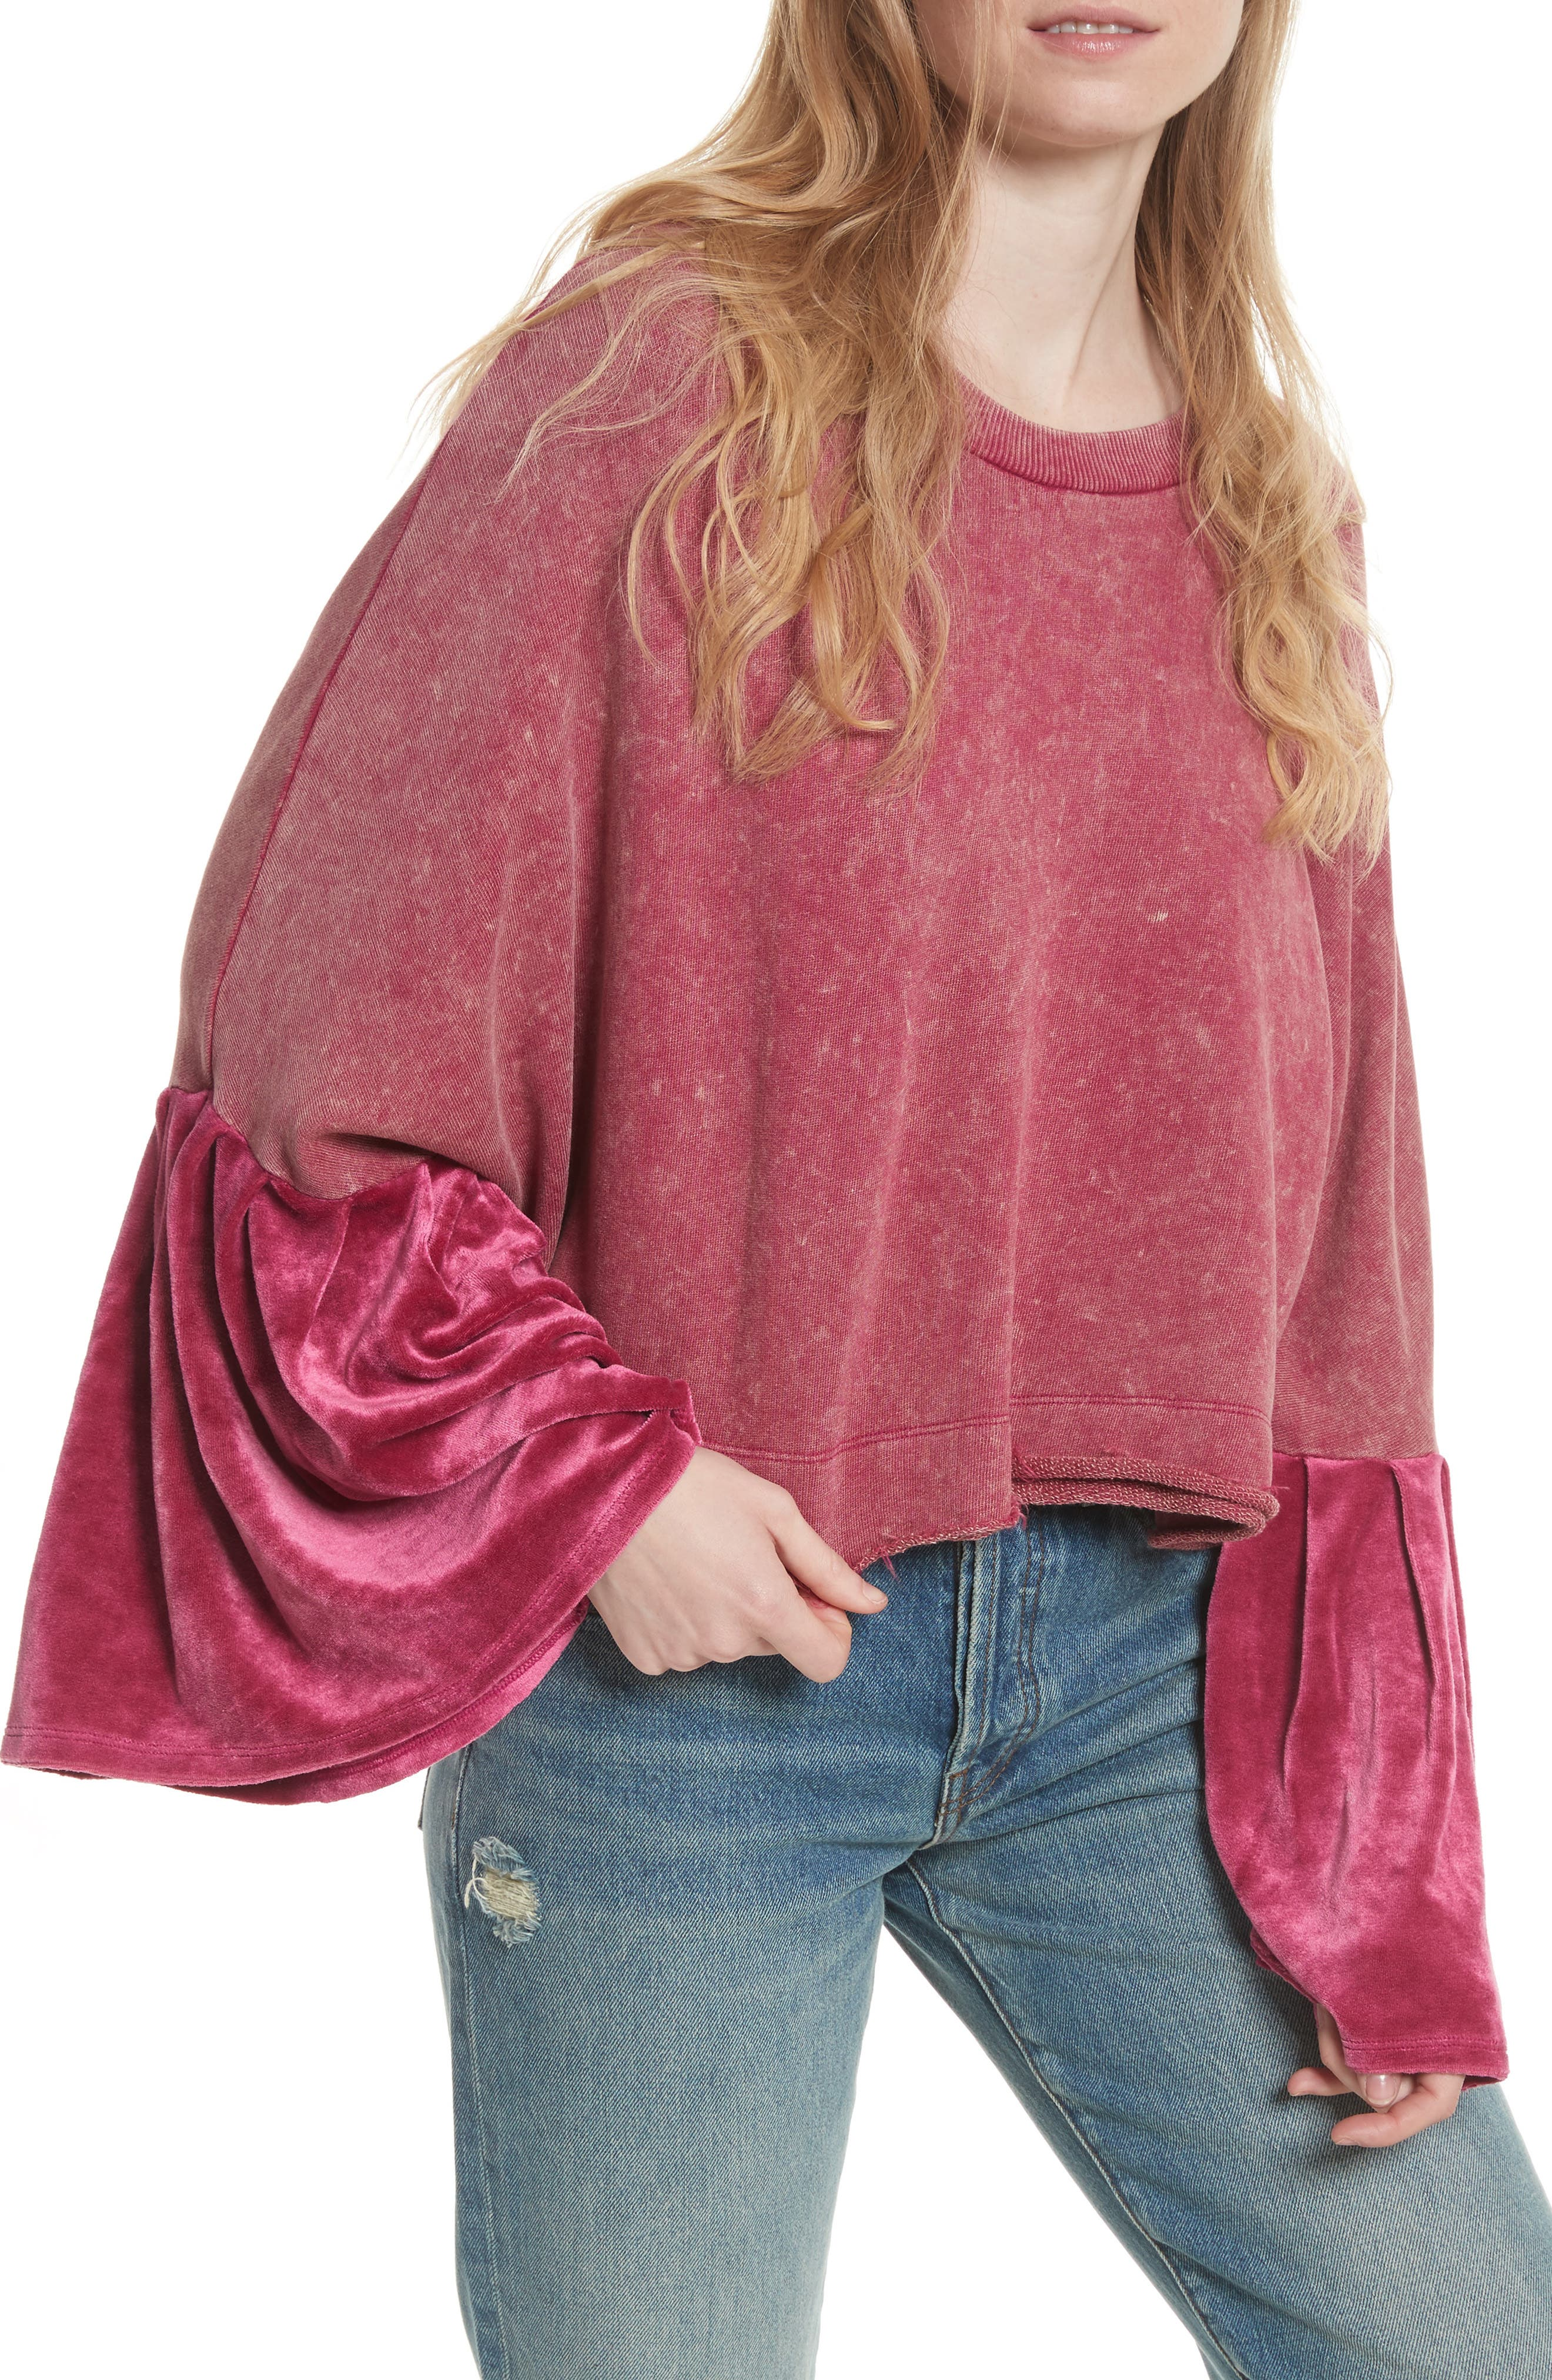 Sleeves Glorious Sleeves Pullover,                             Main thumbnail 3, color,